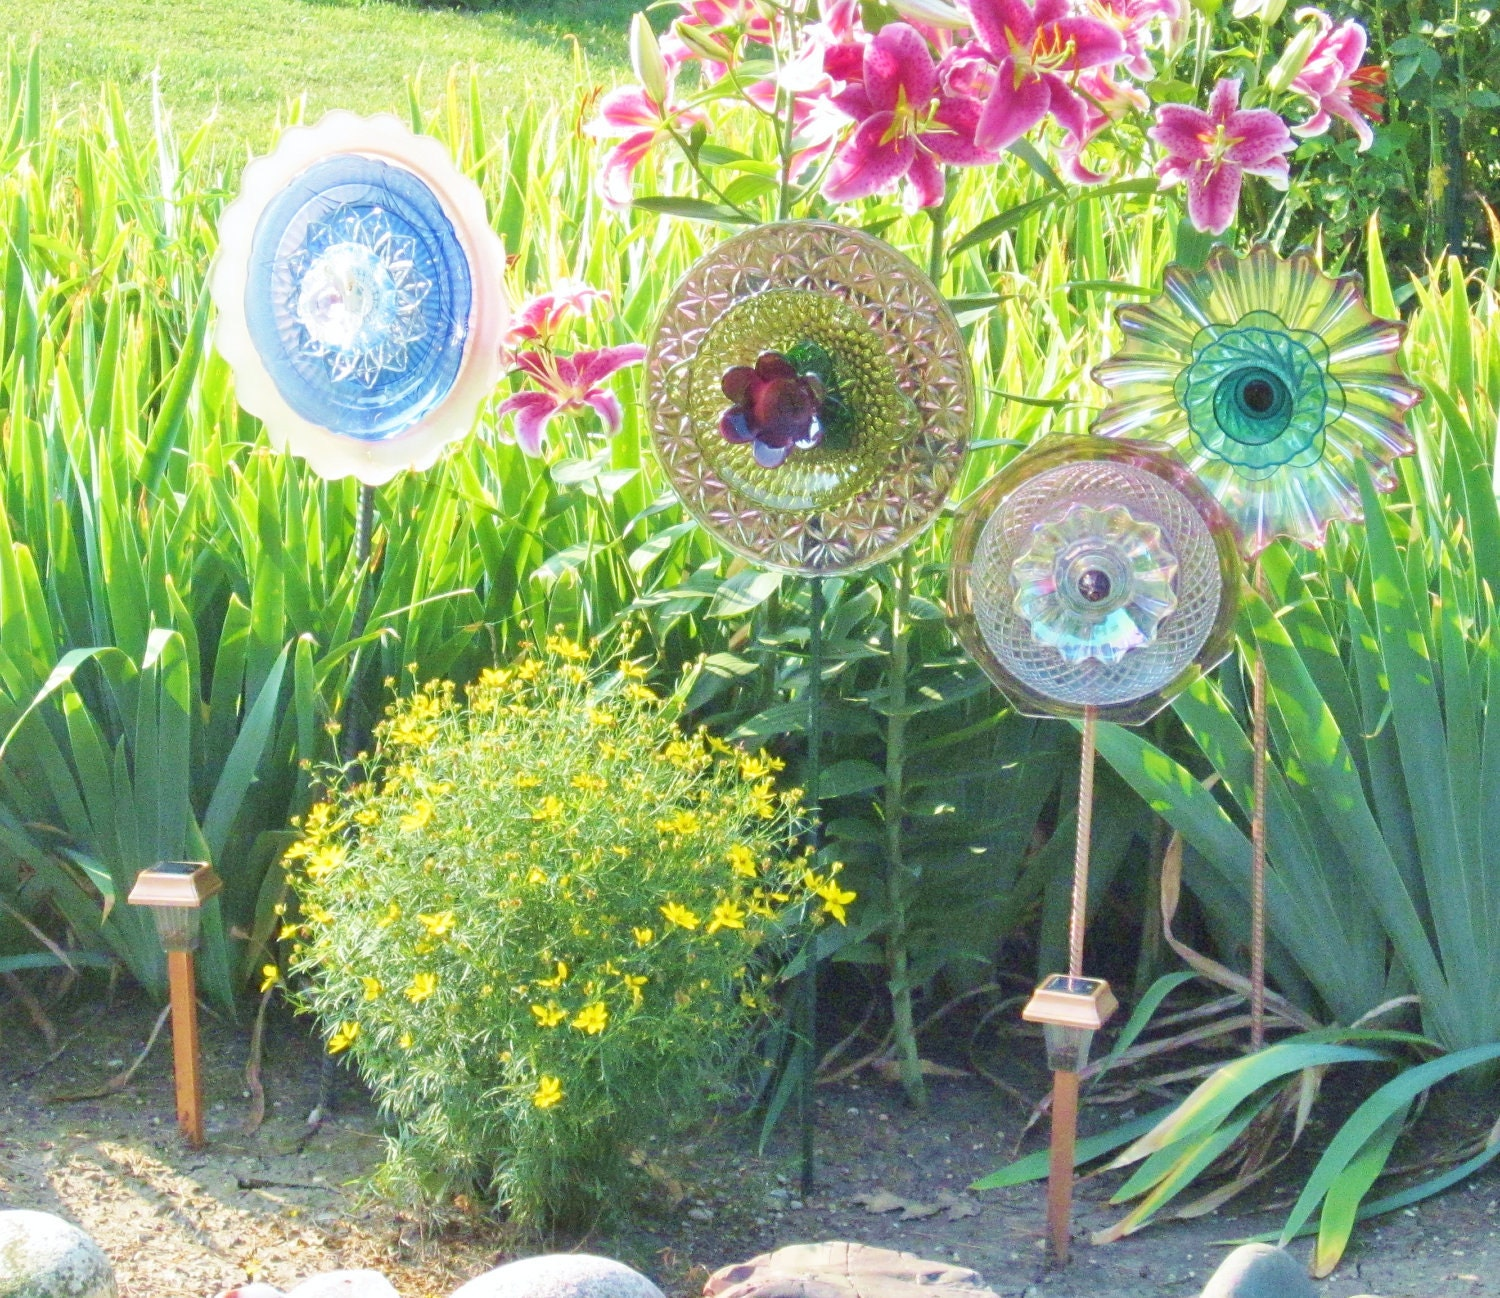 Lawn and garden decorative accessories garden decoration for Garden accents and decor